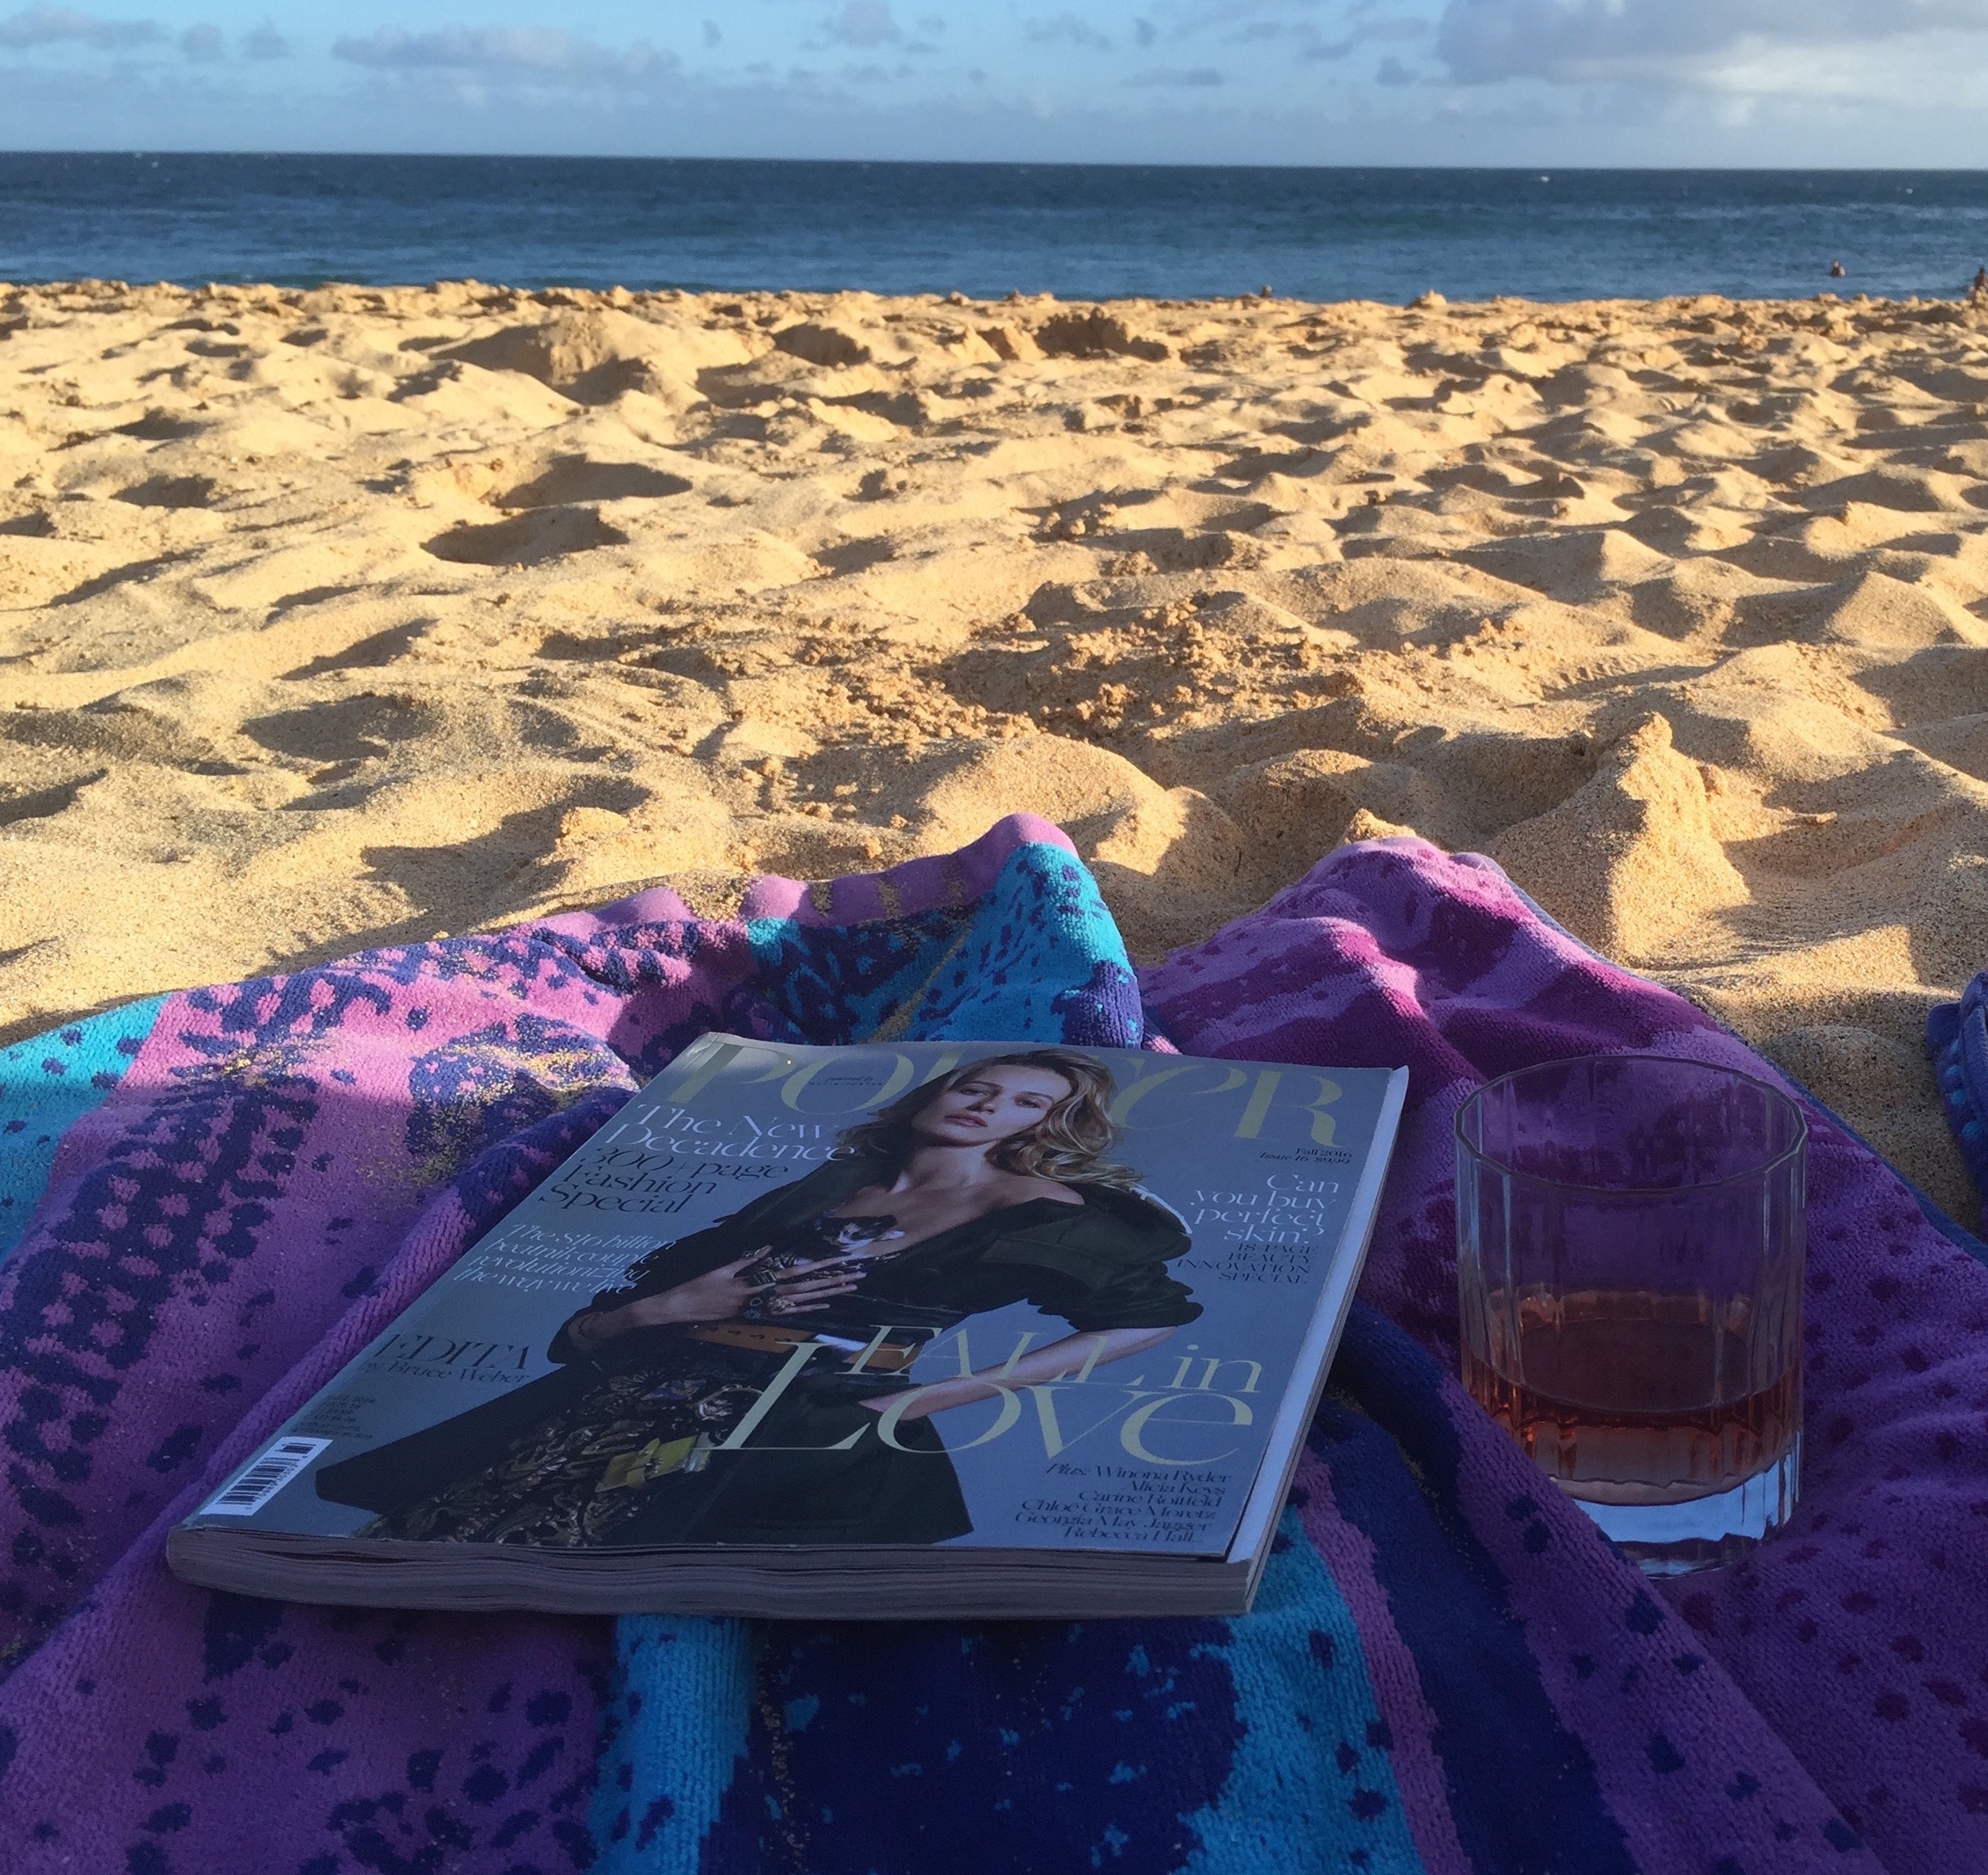 My favorite magazine and some rosé on the beach.